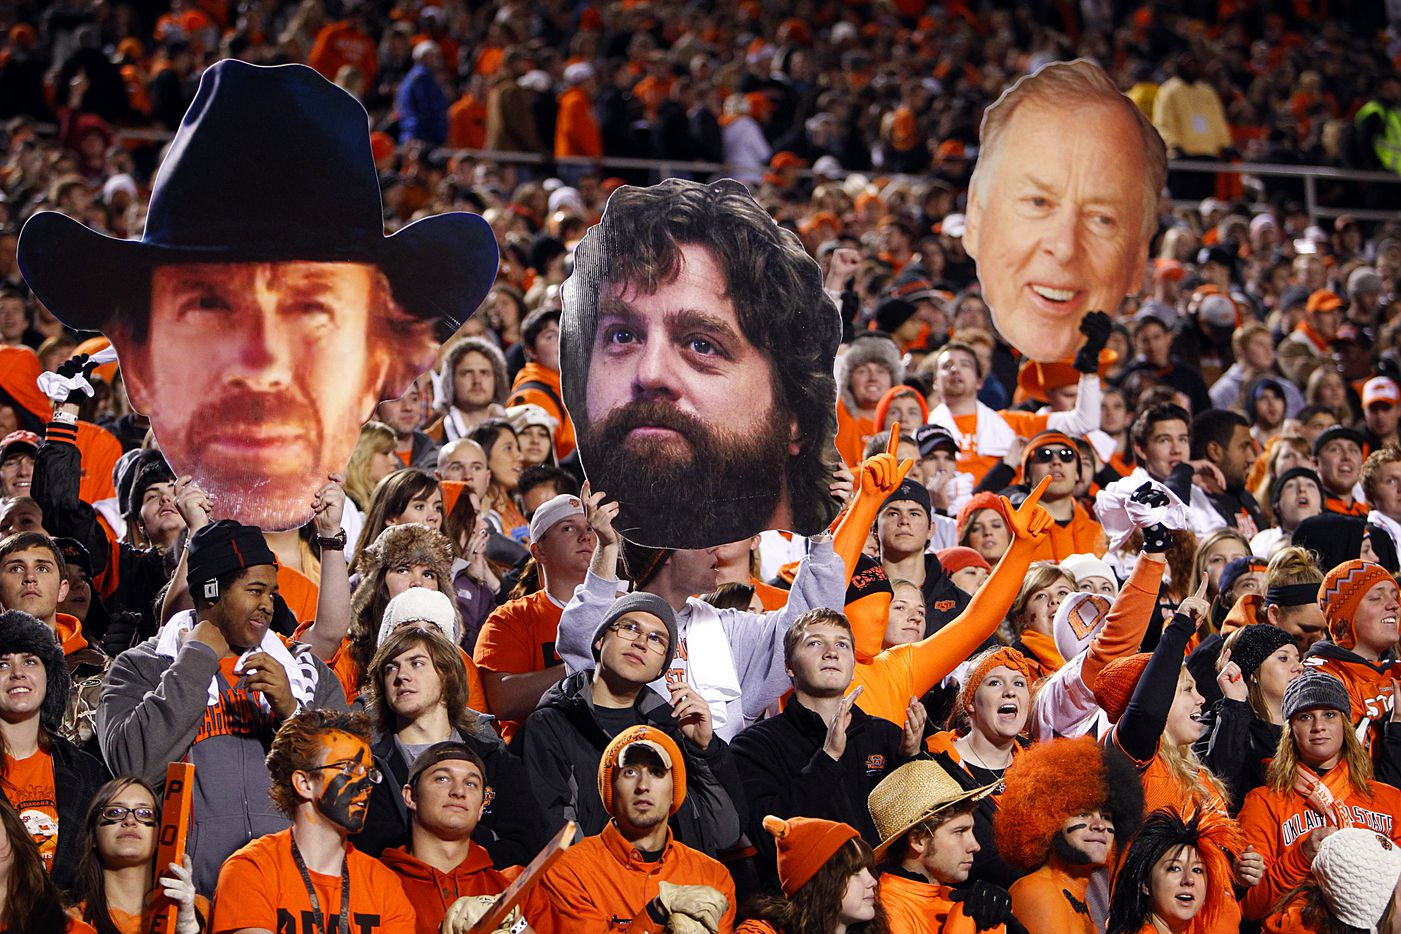 Oklahoma State Cowboys fans sported large cutouts (from left) of actor Chuck Norris, actor Zach Galifianakis and OSU alum T. Boone Pickens before a game with Oklahoma at Boone Pickens Stadium in Stillwate in 2011.